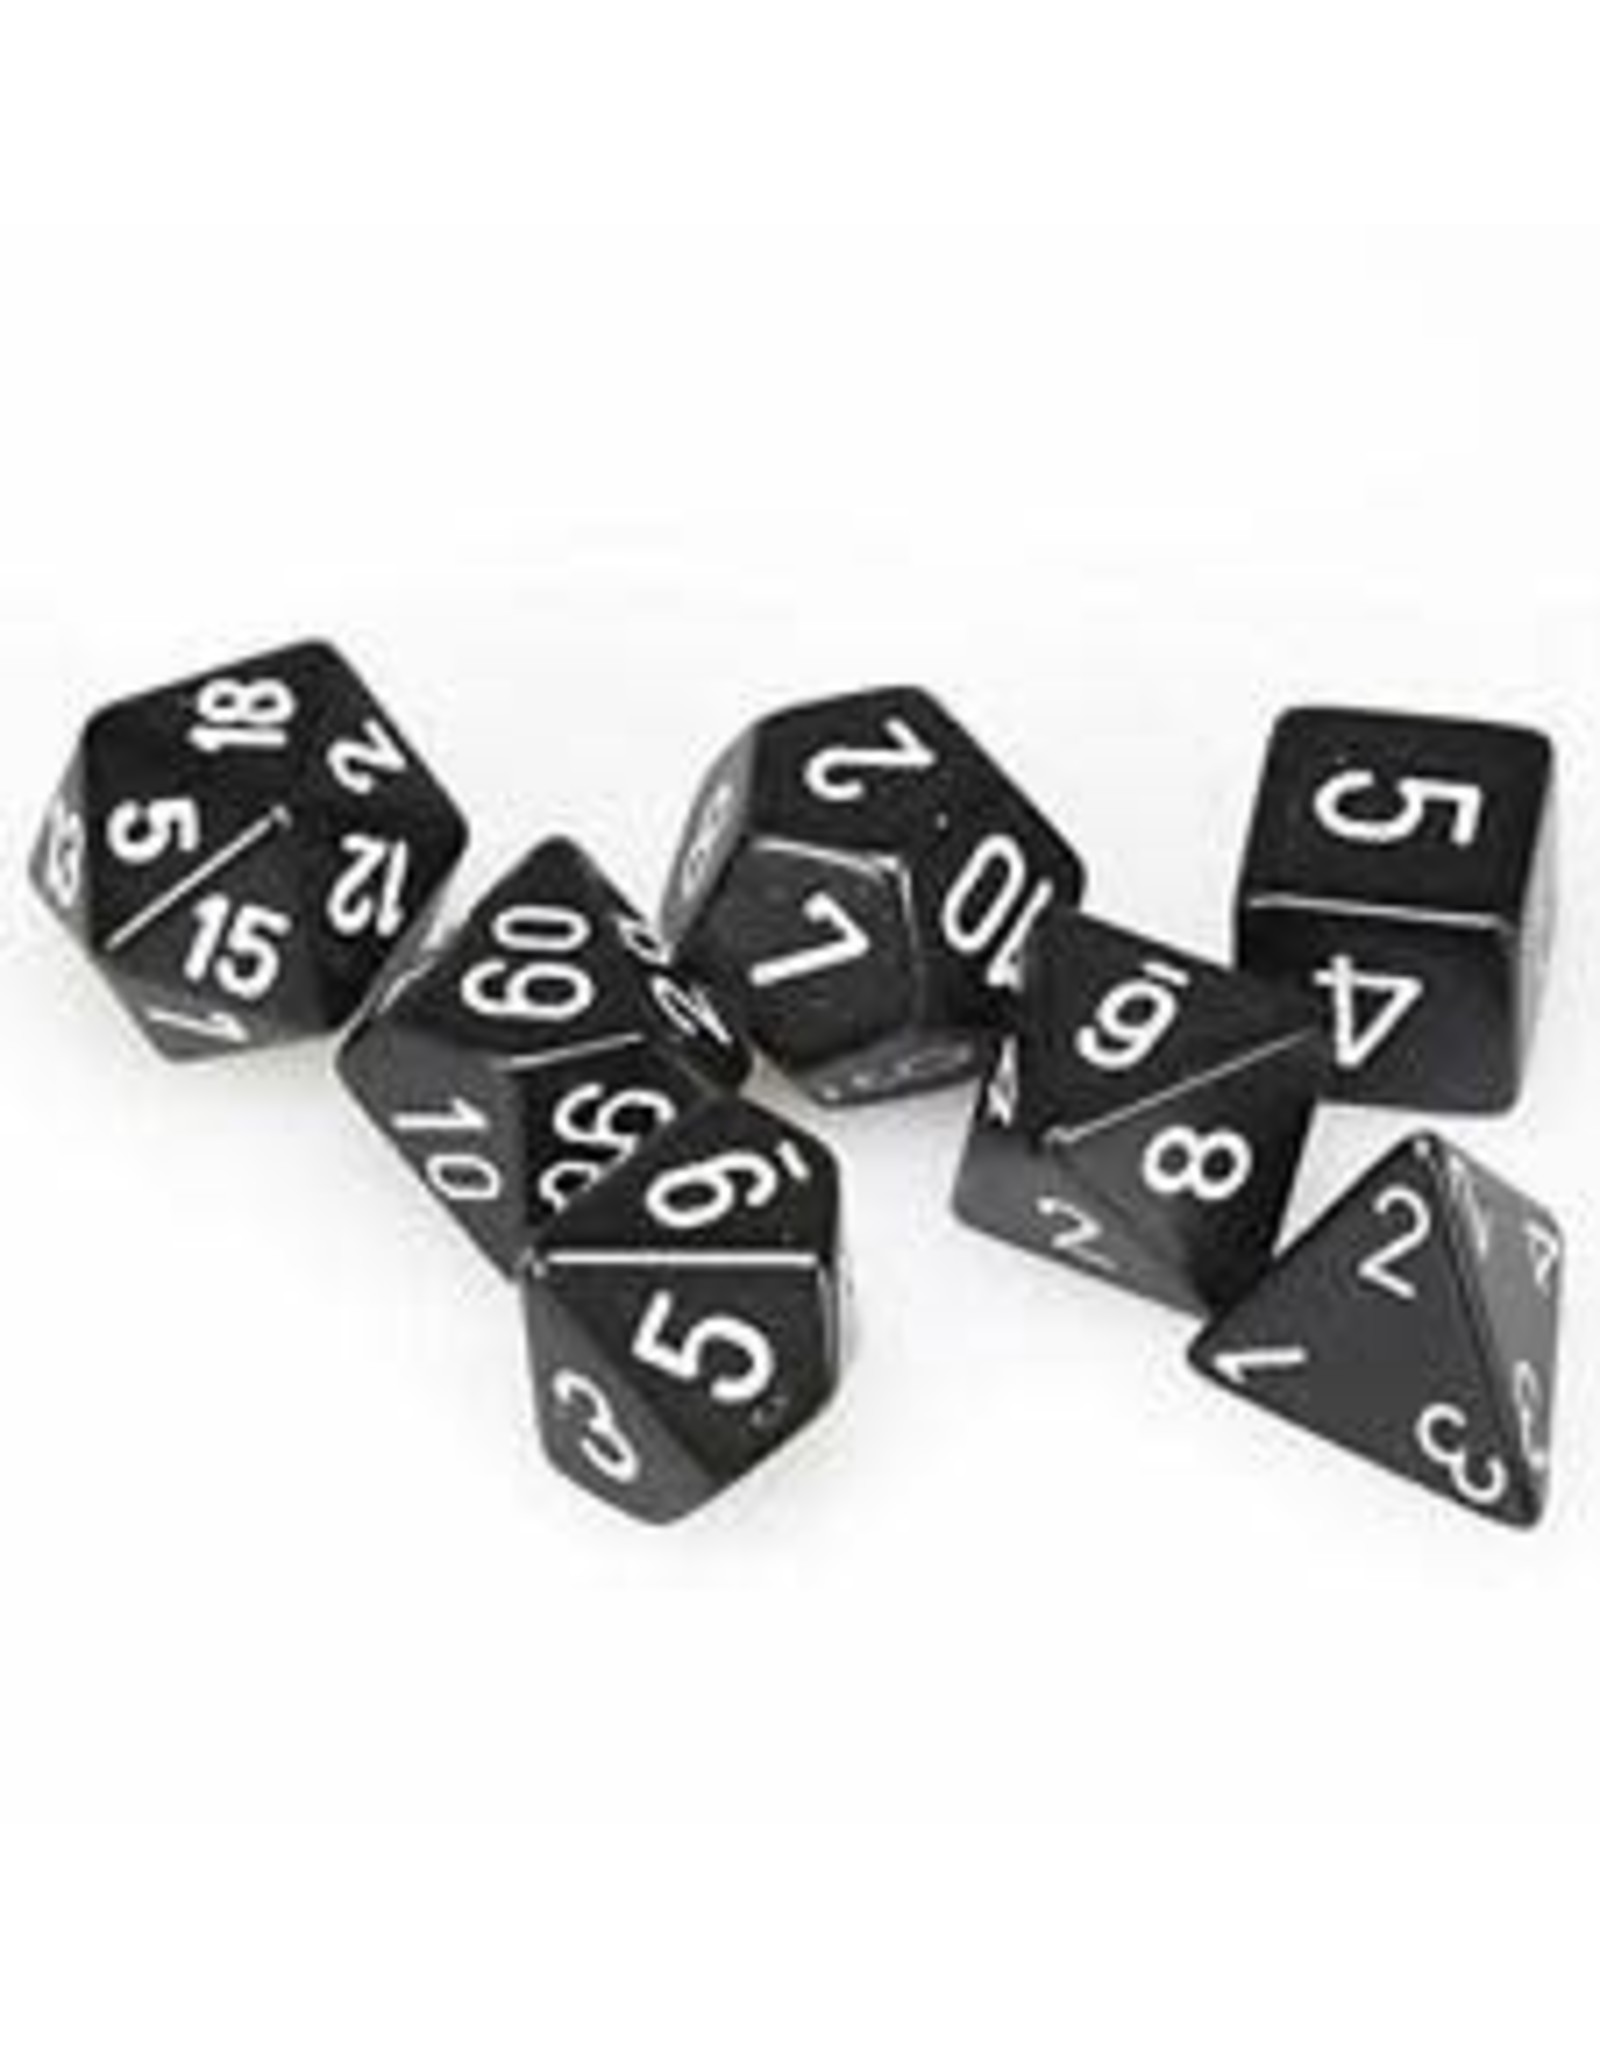 Chessex Dice: 7-Set Cube Opaque Black with White number